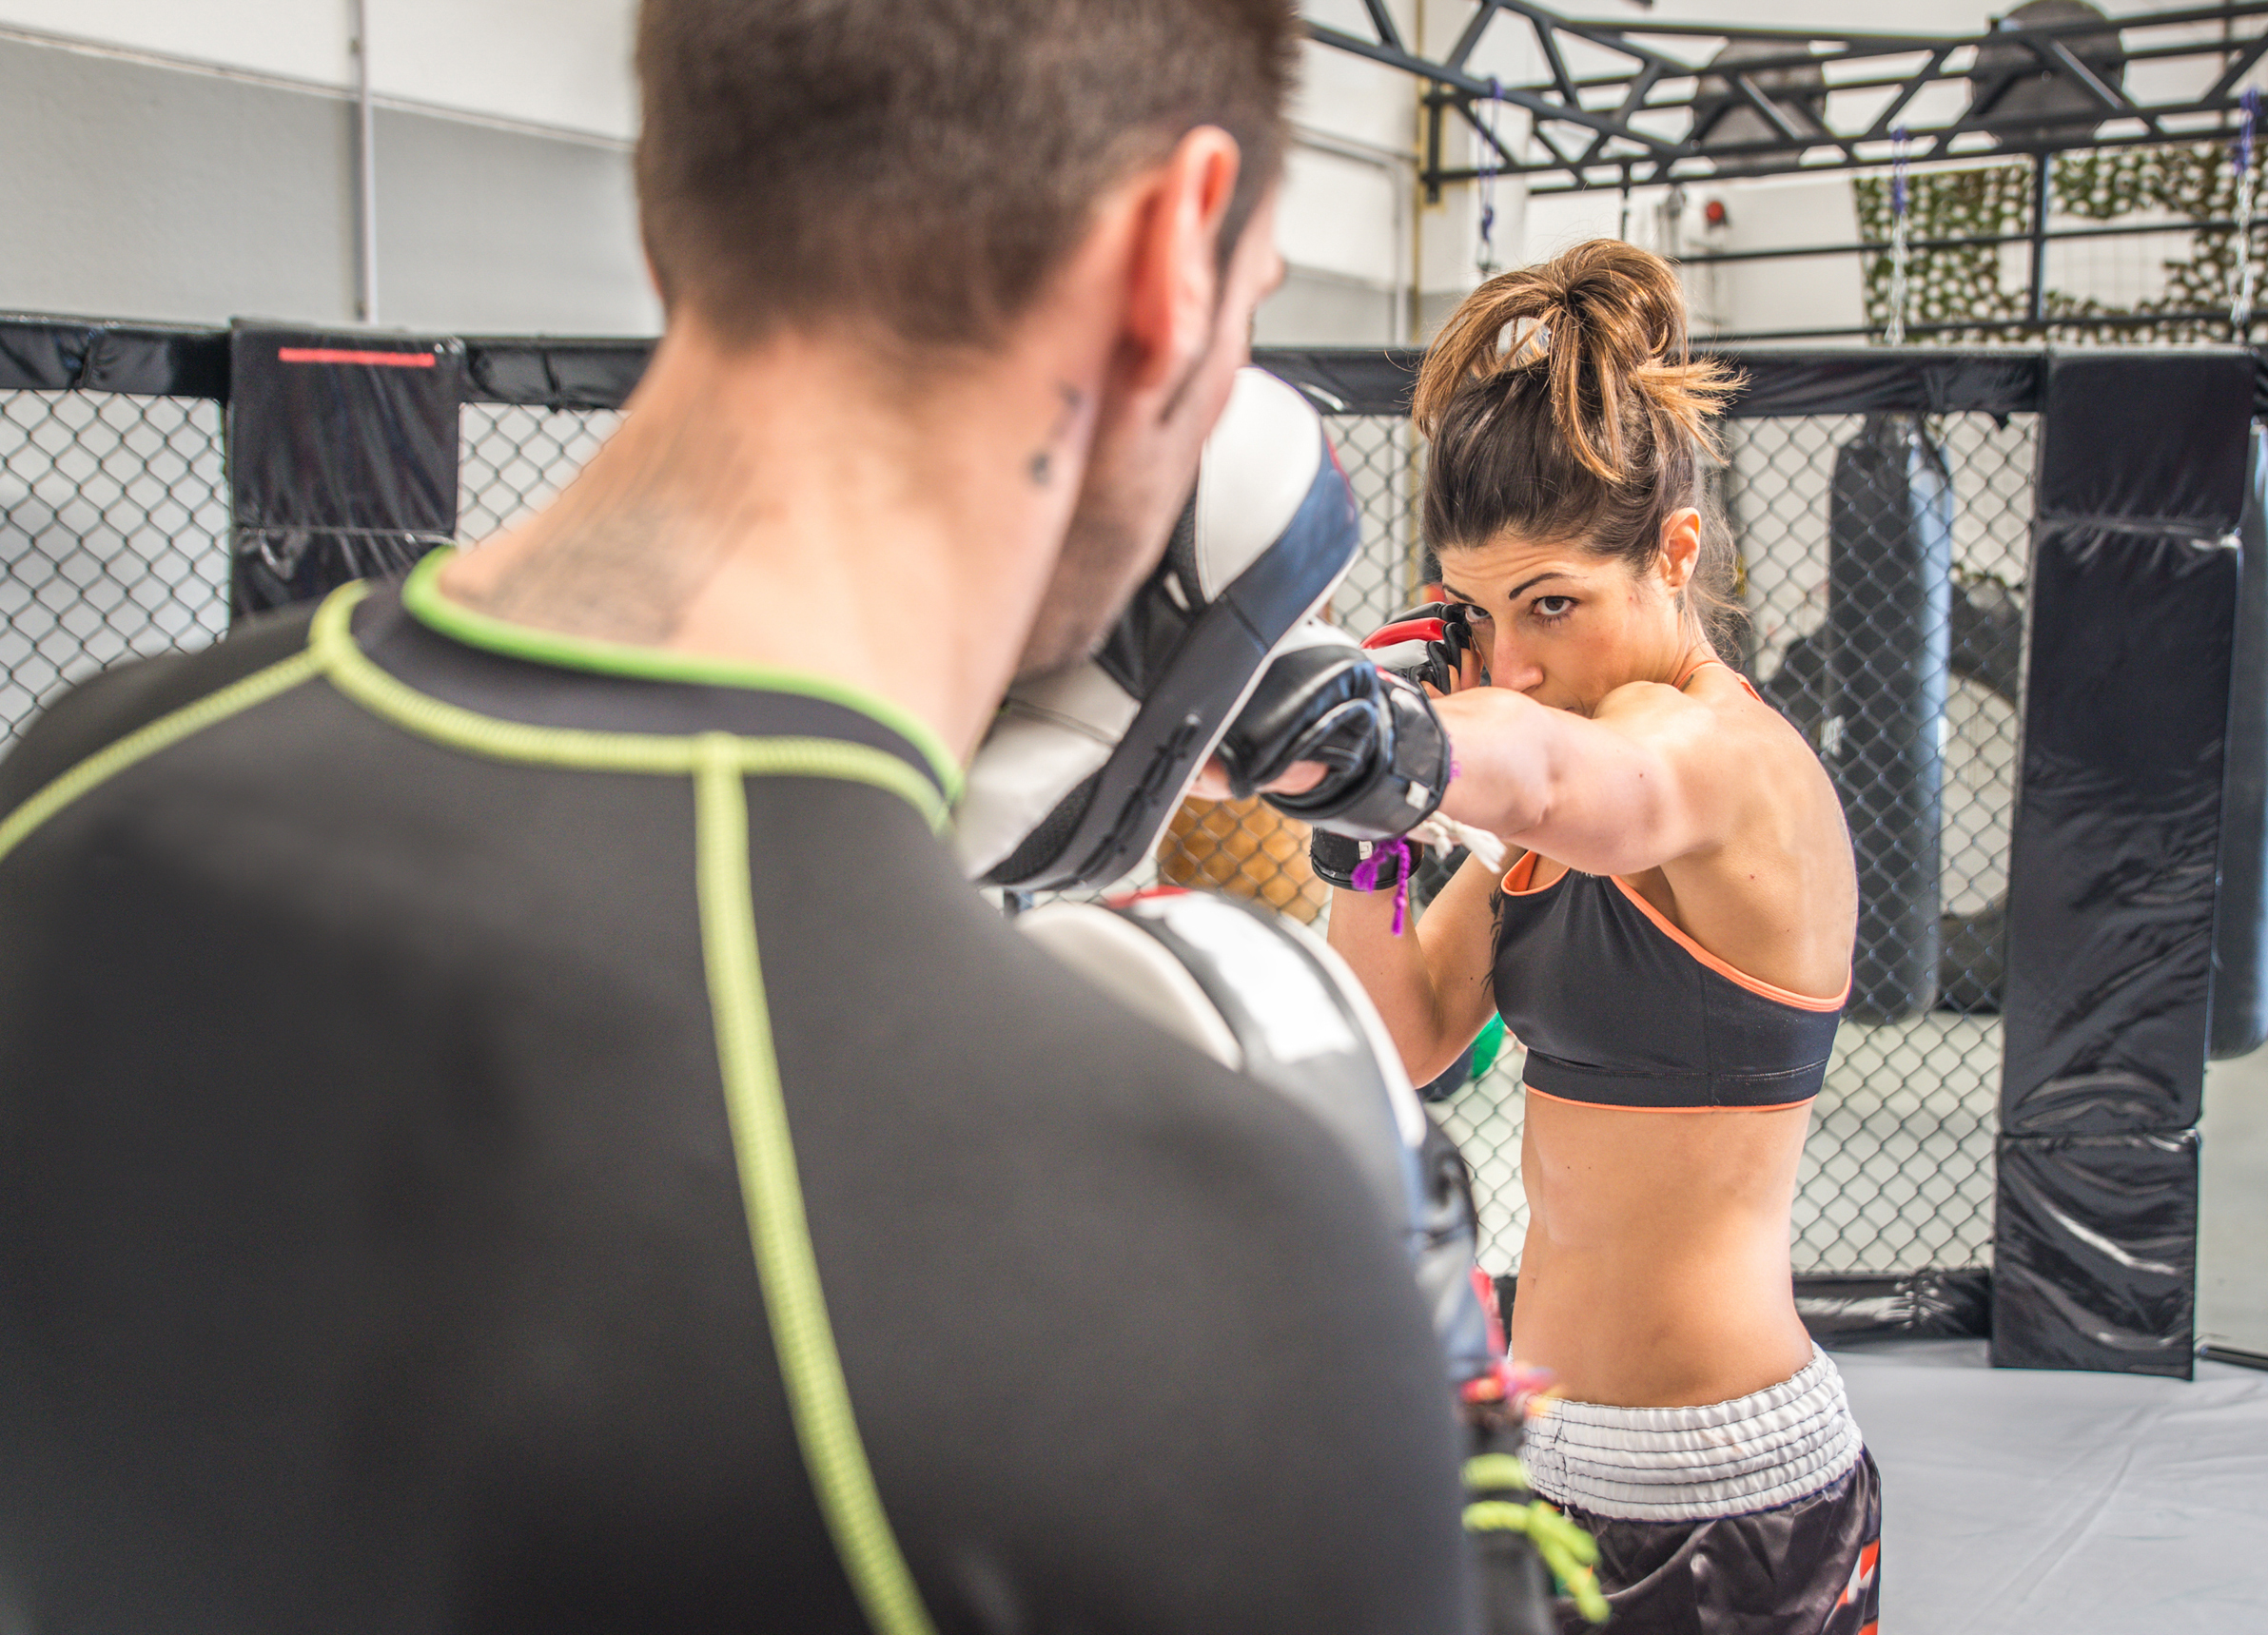 Kickboxing - Our kickboxing classes are fantastic for both women and men. We are part of the WCKA (Welsh Contact Kickboxing association) and offer pad work, semi and full contact kickboxing to suit all needs and abilities. Kickboxing is a fantastic opportunity to get fit and learn an effective striking art and sport in a fun environment and our female and male black belt instructors Richard Lewis and Mandy Lewis support and cater for all abilities and experience.